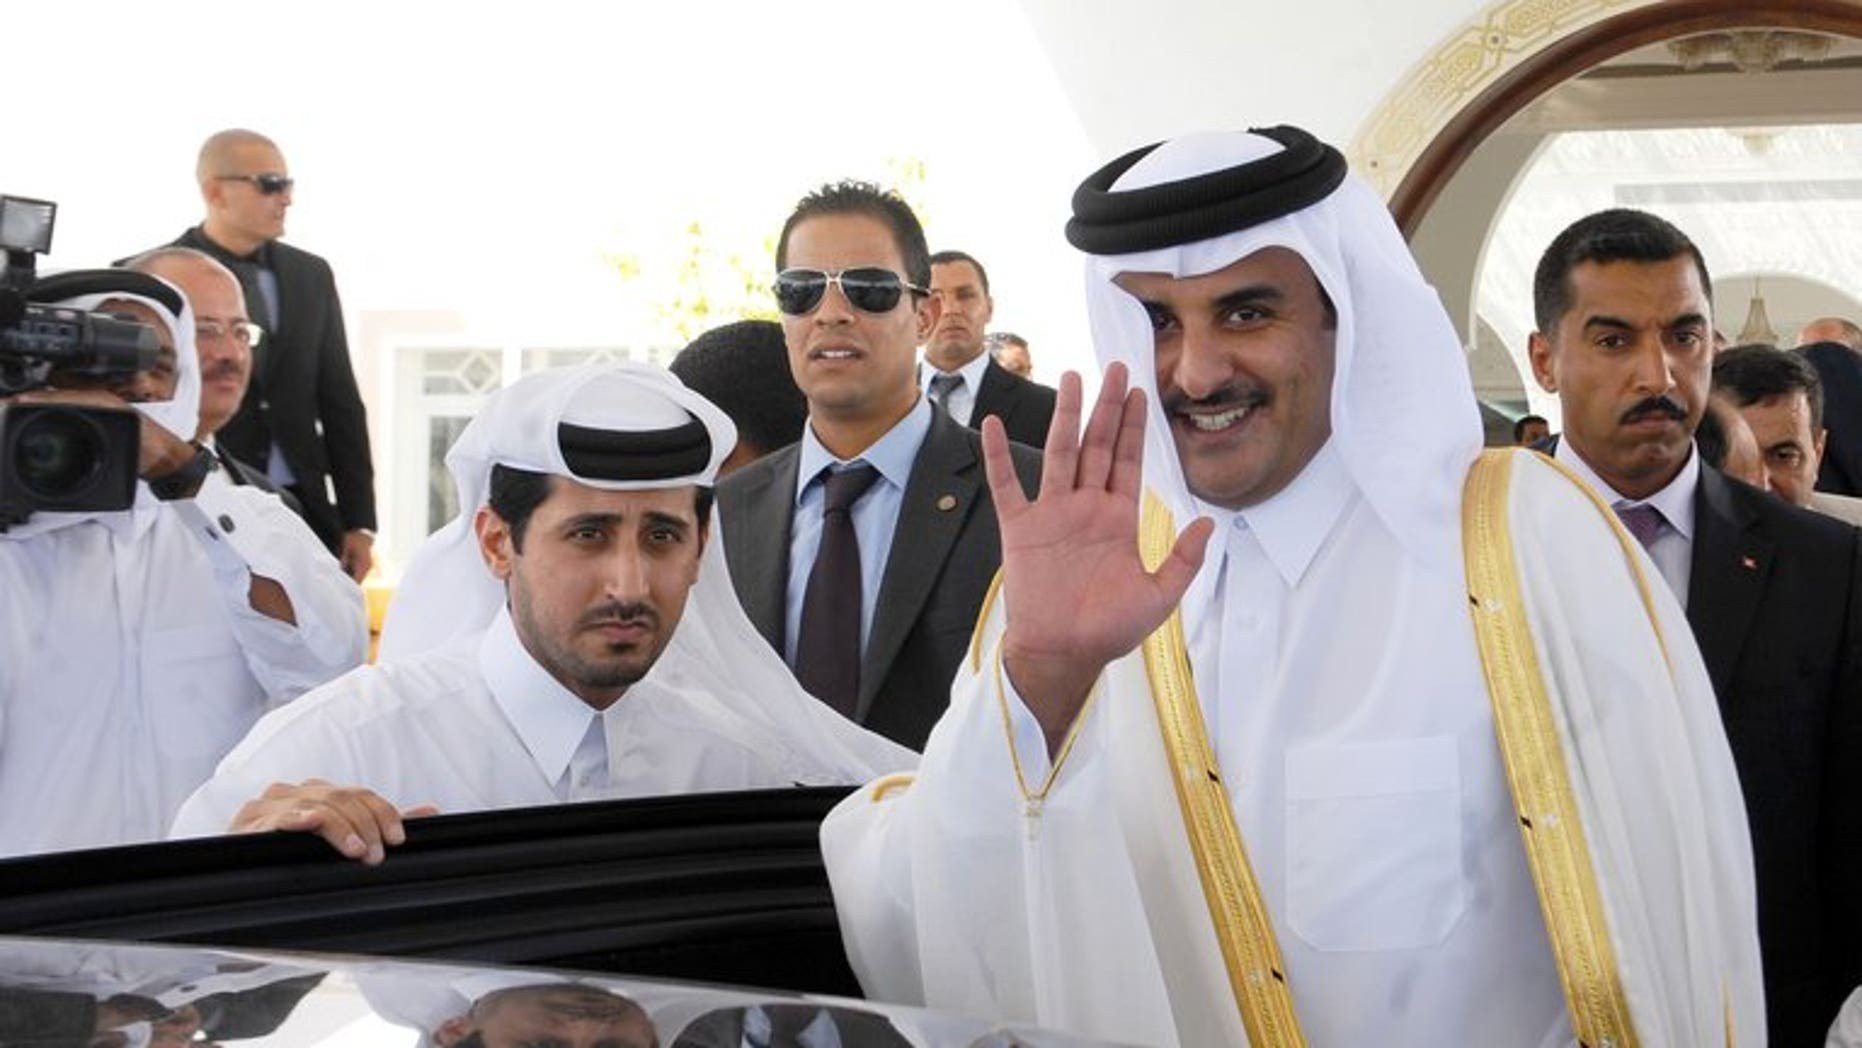 Sheikh Tamim bin Hamad al-Thani waves for photographers upon arrival in Tunis on July 16, 2012. Since his appointment as heir apparent a decade ago, Sheikh Tamim has held top security and economic posts, as well as overseeing Qatar's ambitious plans to use sports to raise its international profile.